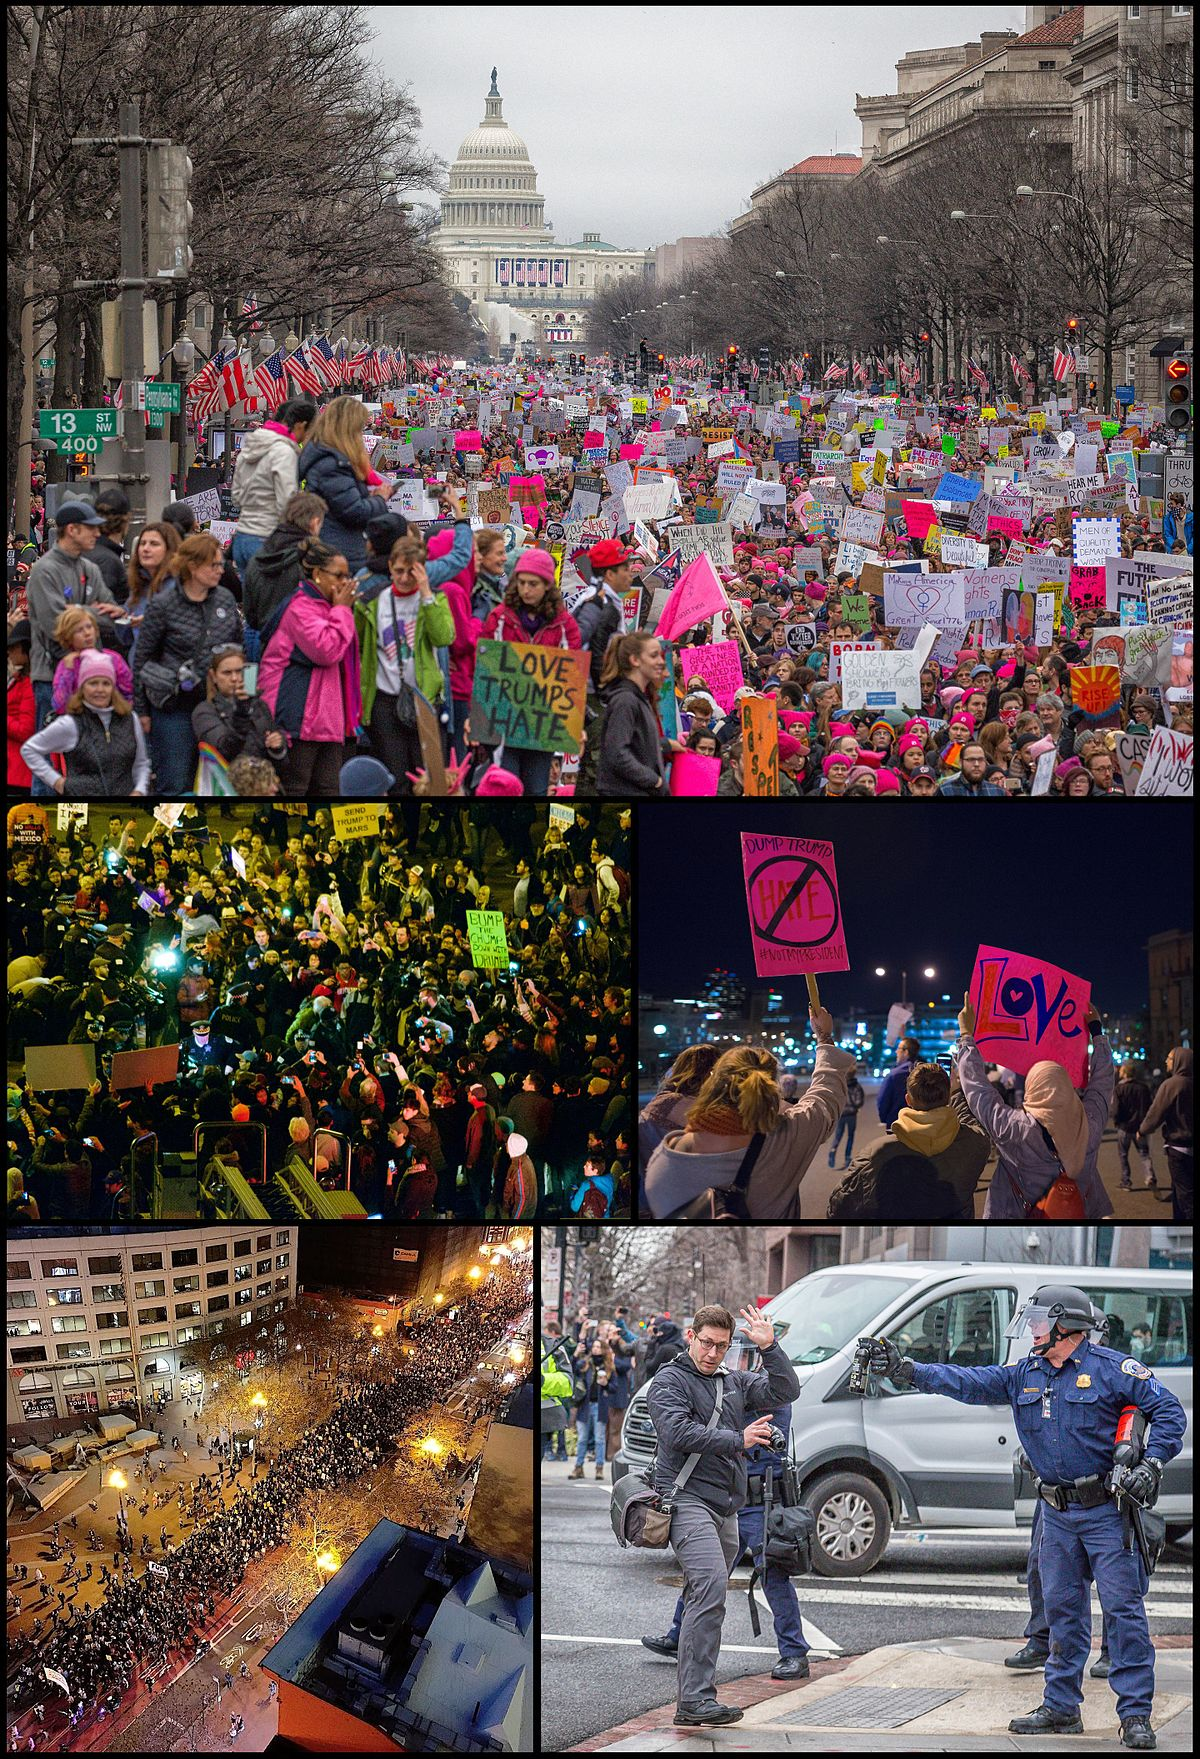 Protests against Donald Trump - Wikipedia